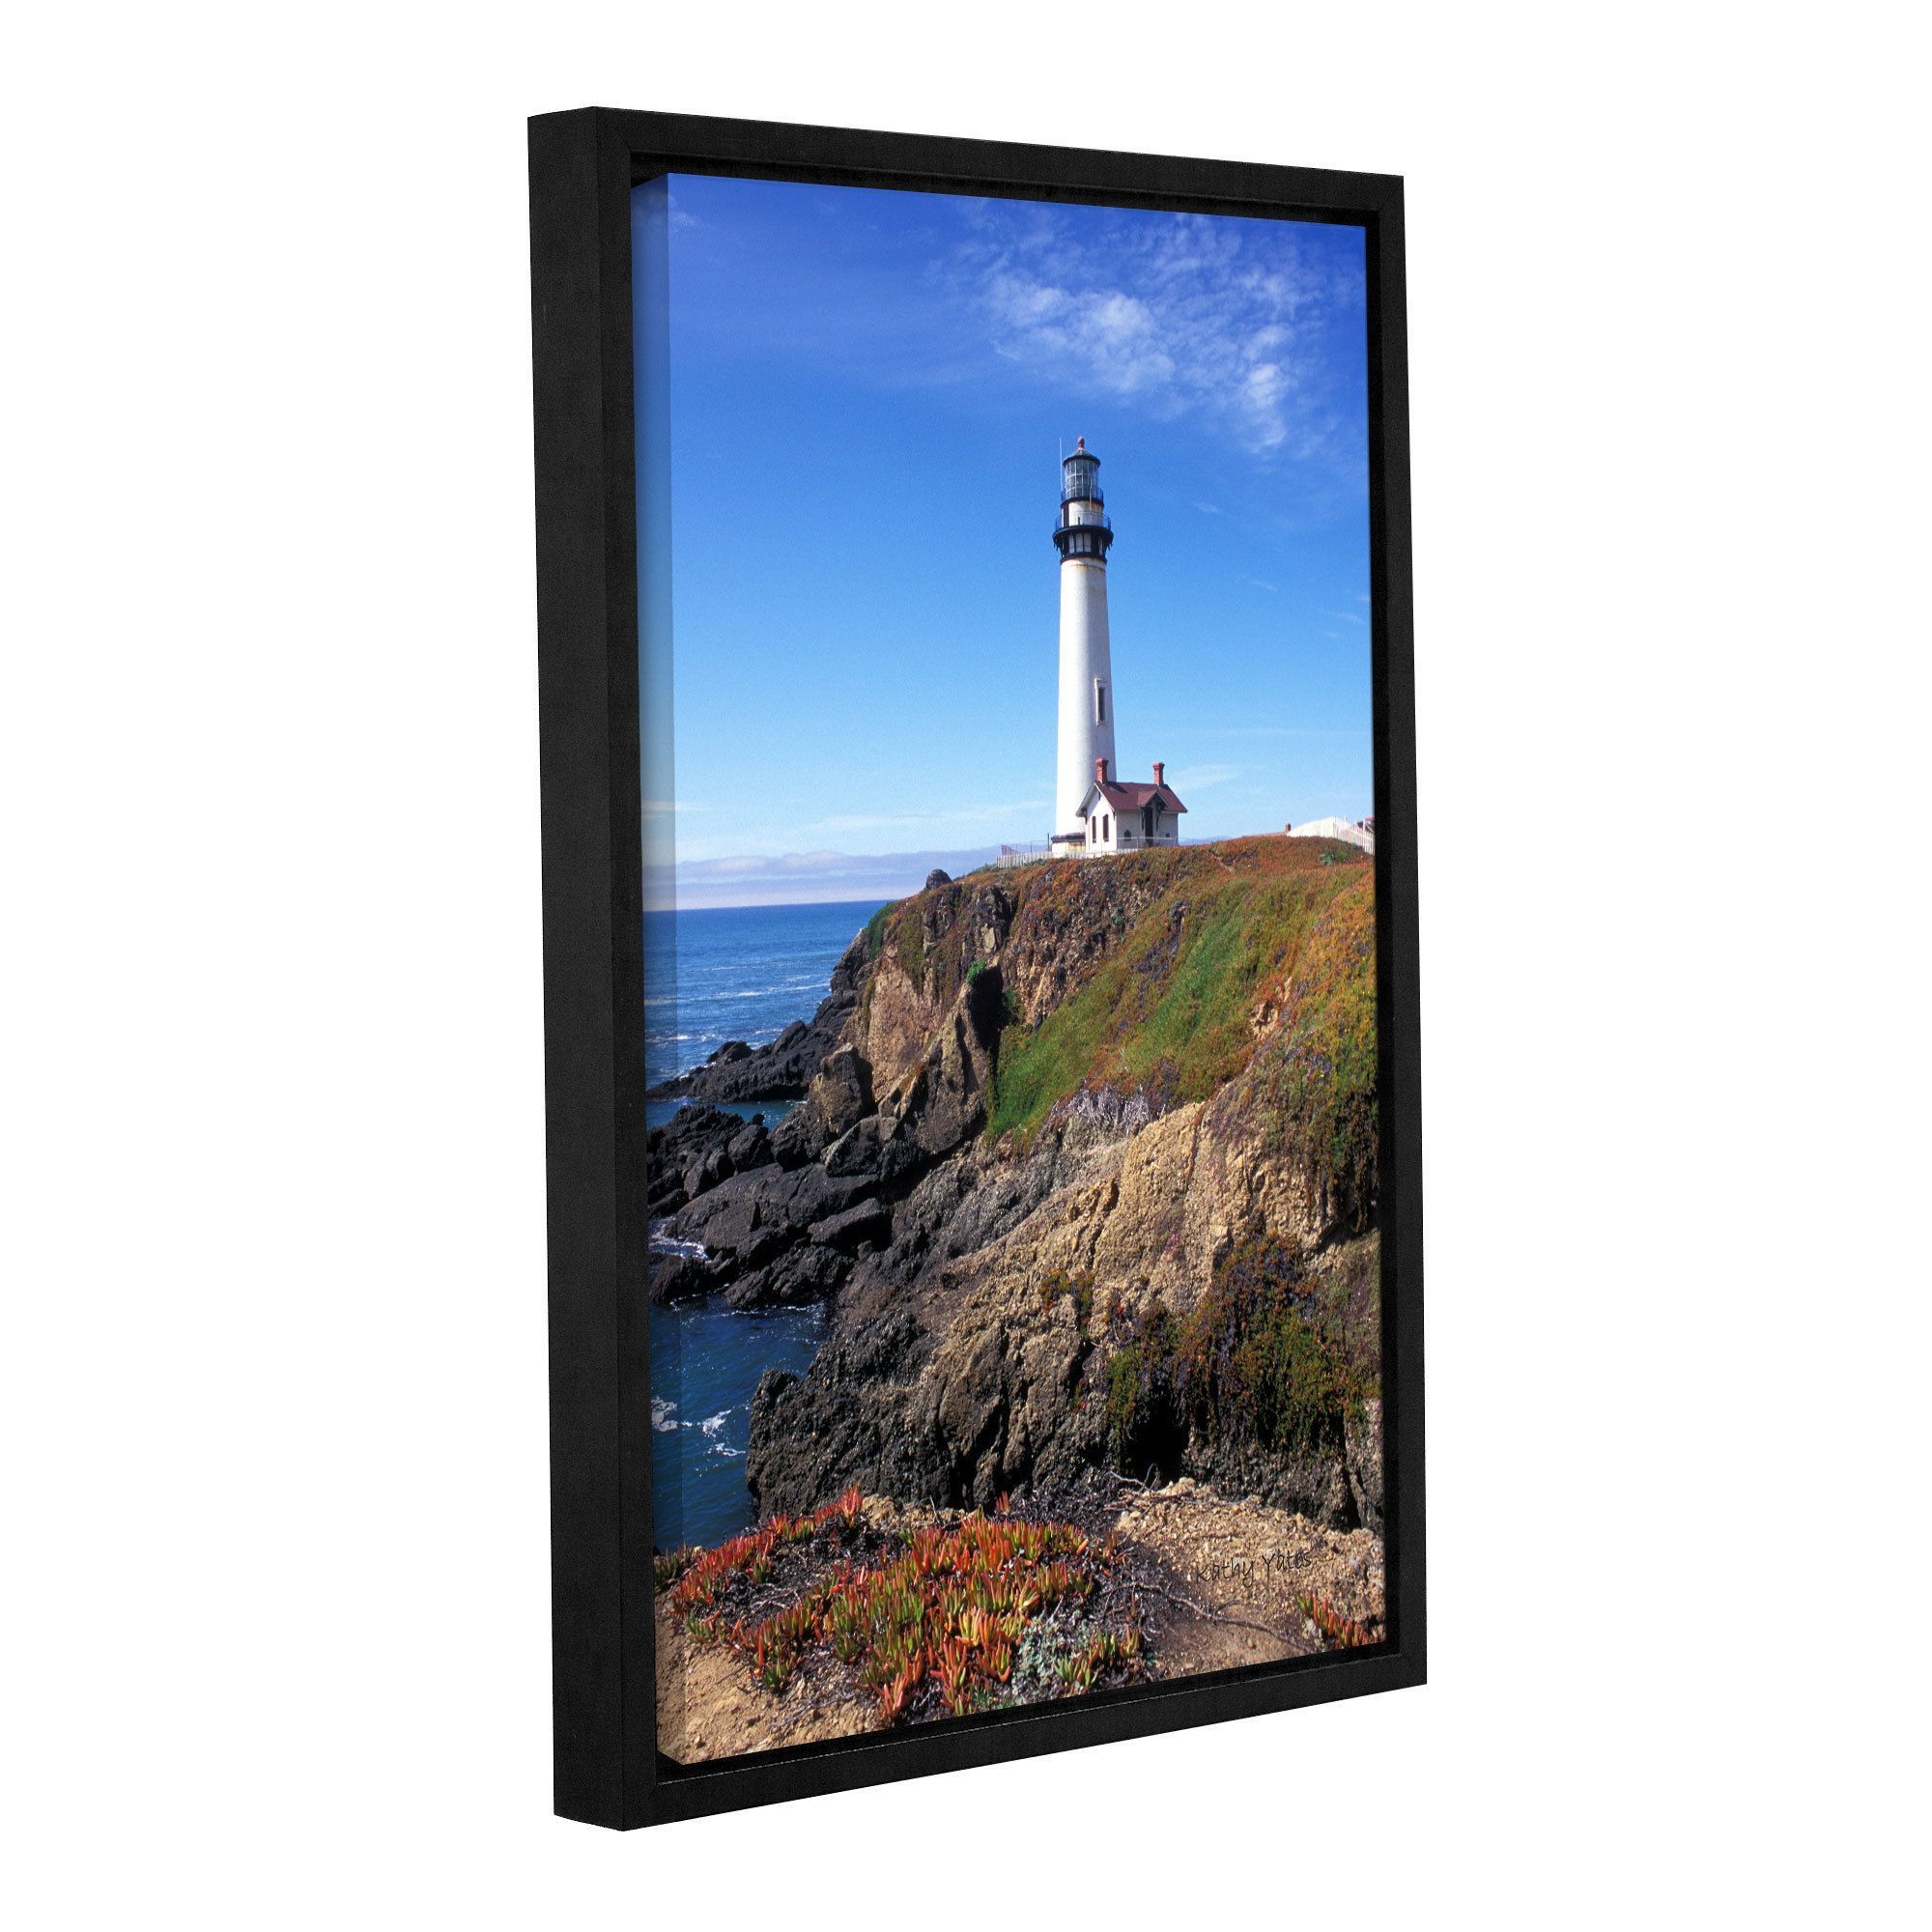 ArtWall Kathy Yates's Pigeon Point Lighthouse 2, Gallery Wrapped Floater-framed